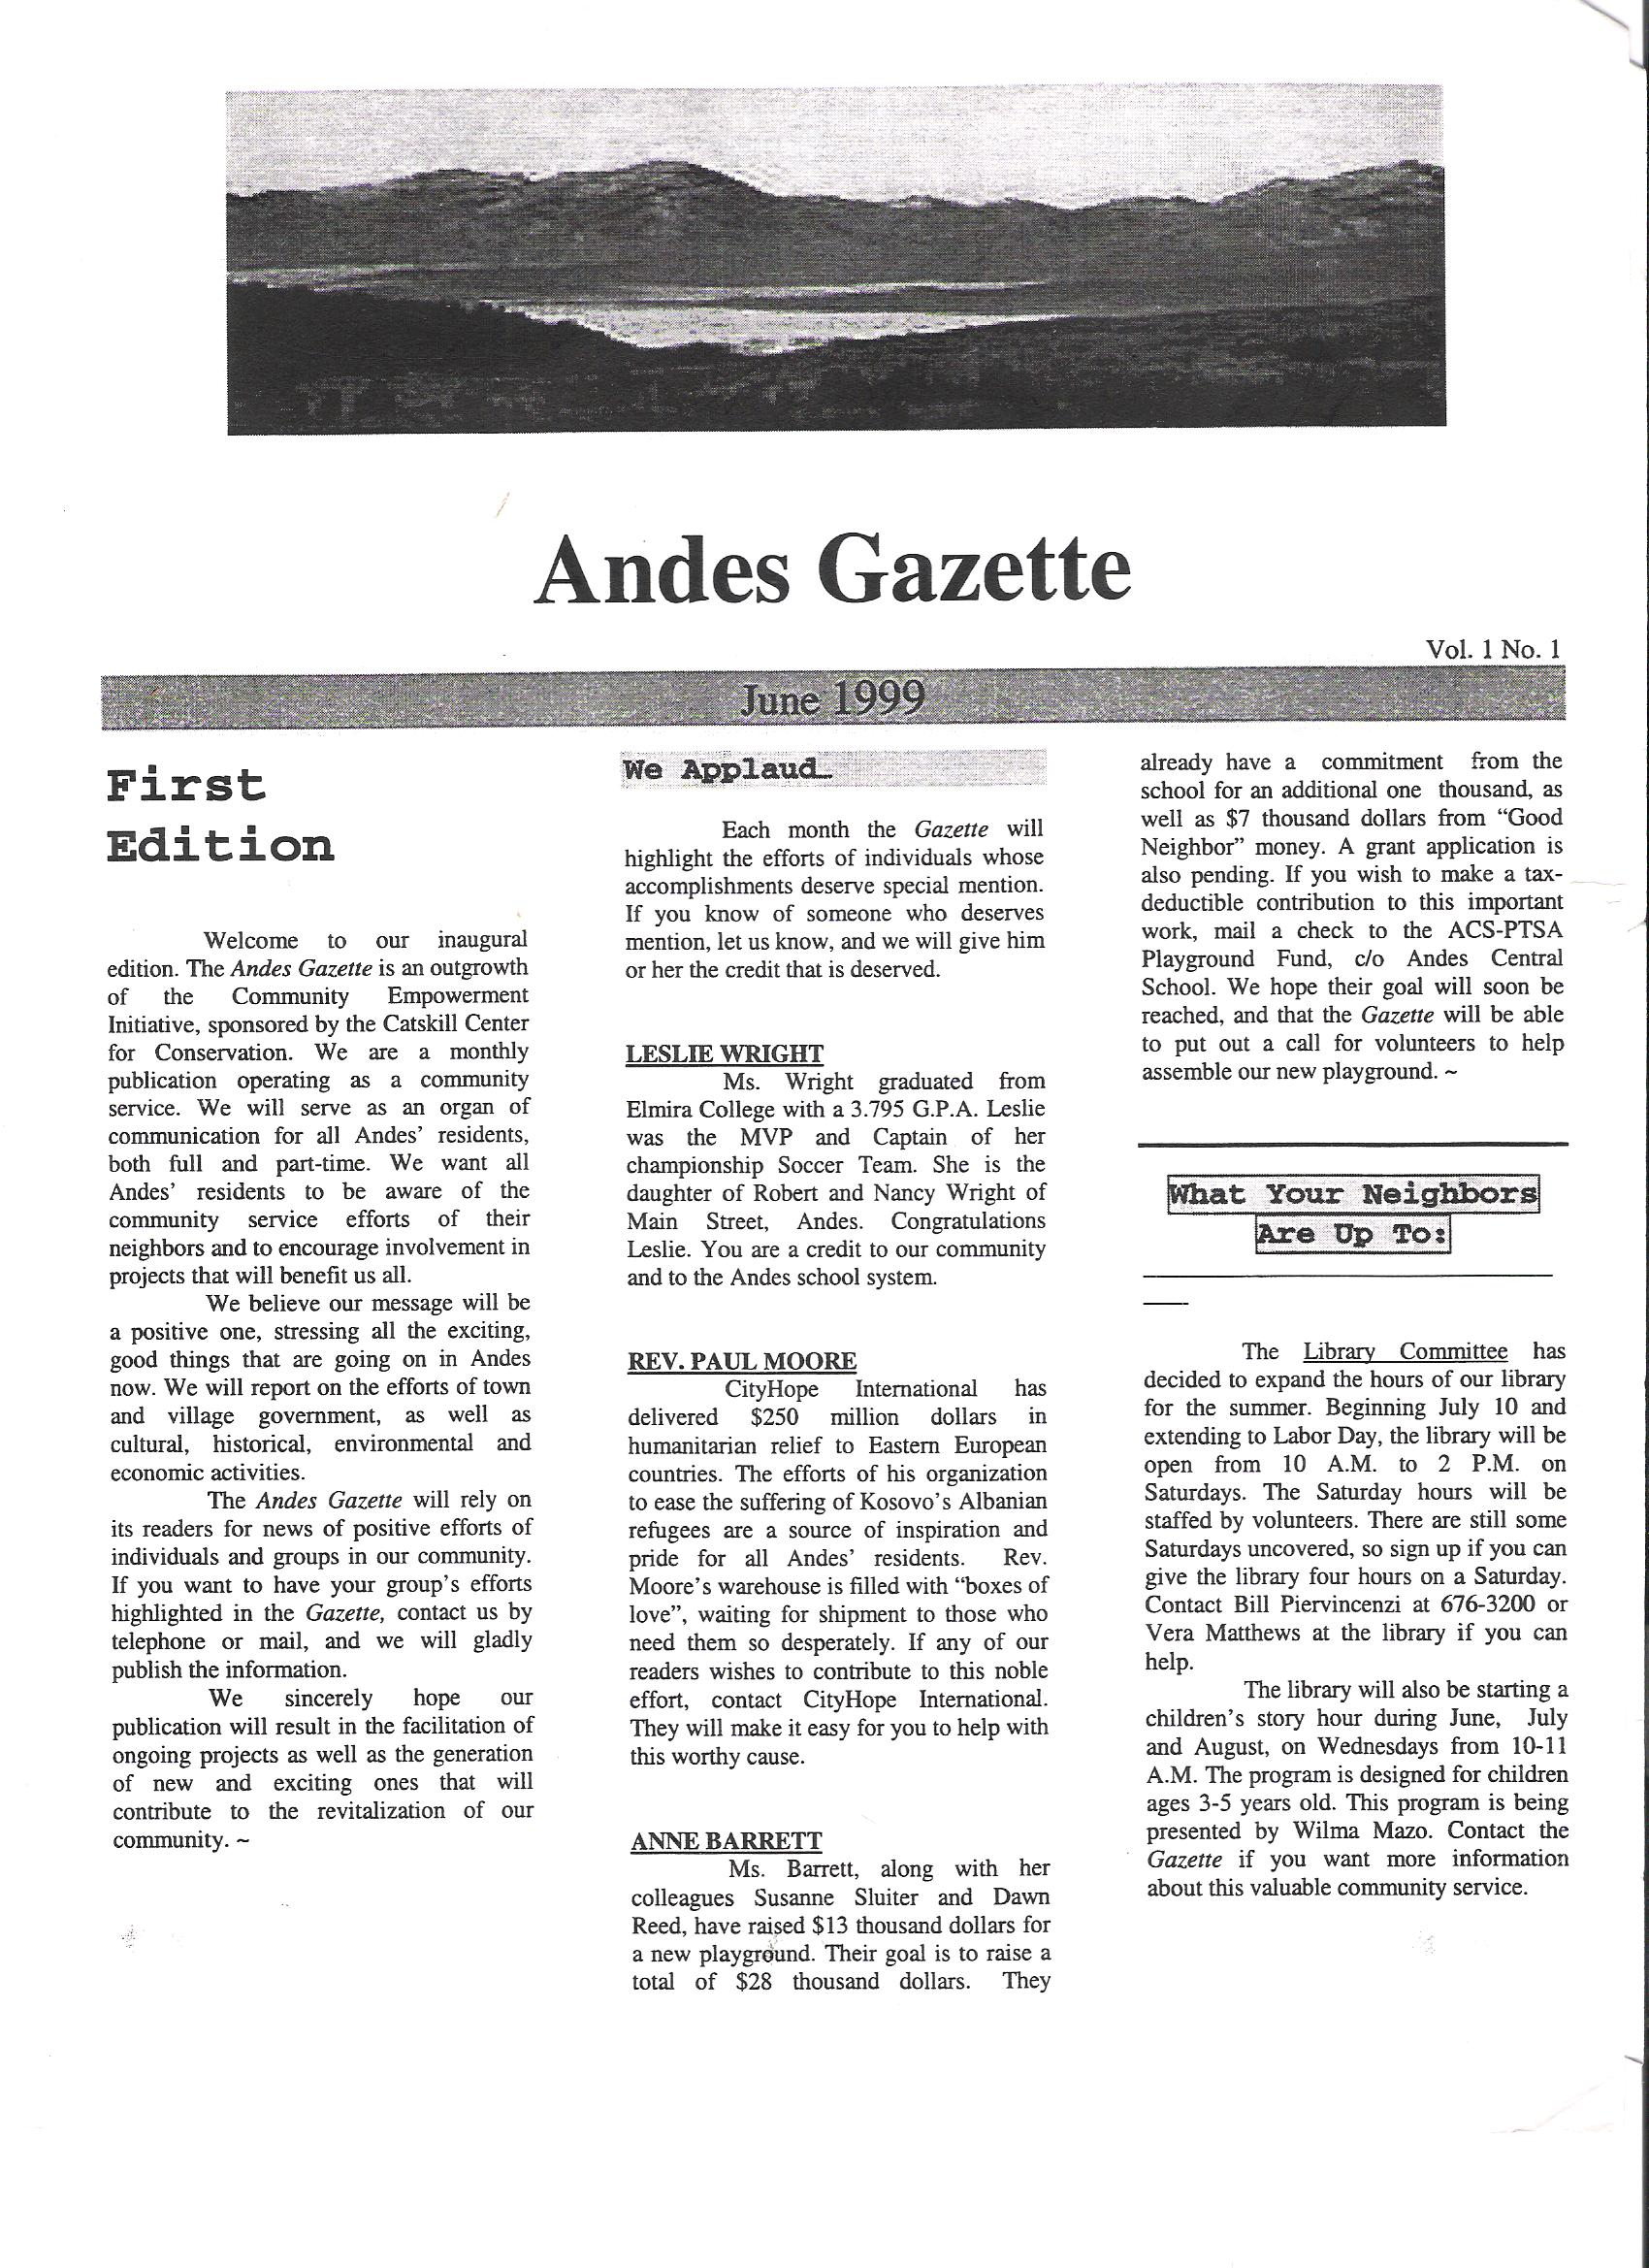 ANDES GAZETTE - JUNE 1999 - Page 1